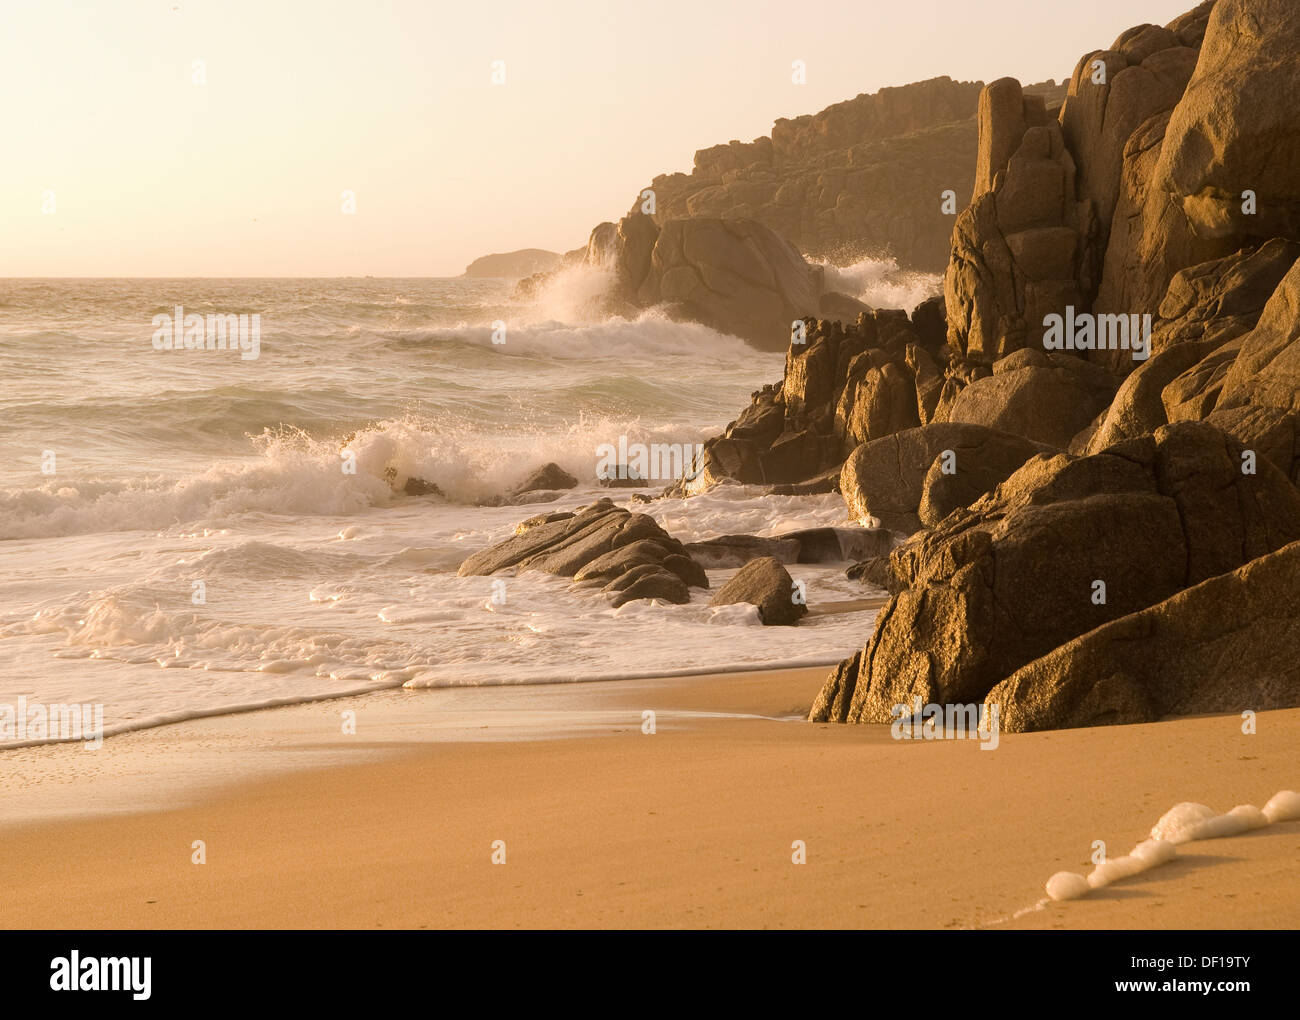 Detail of galician coast at golden hour. - Stock Image